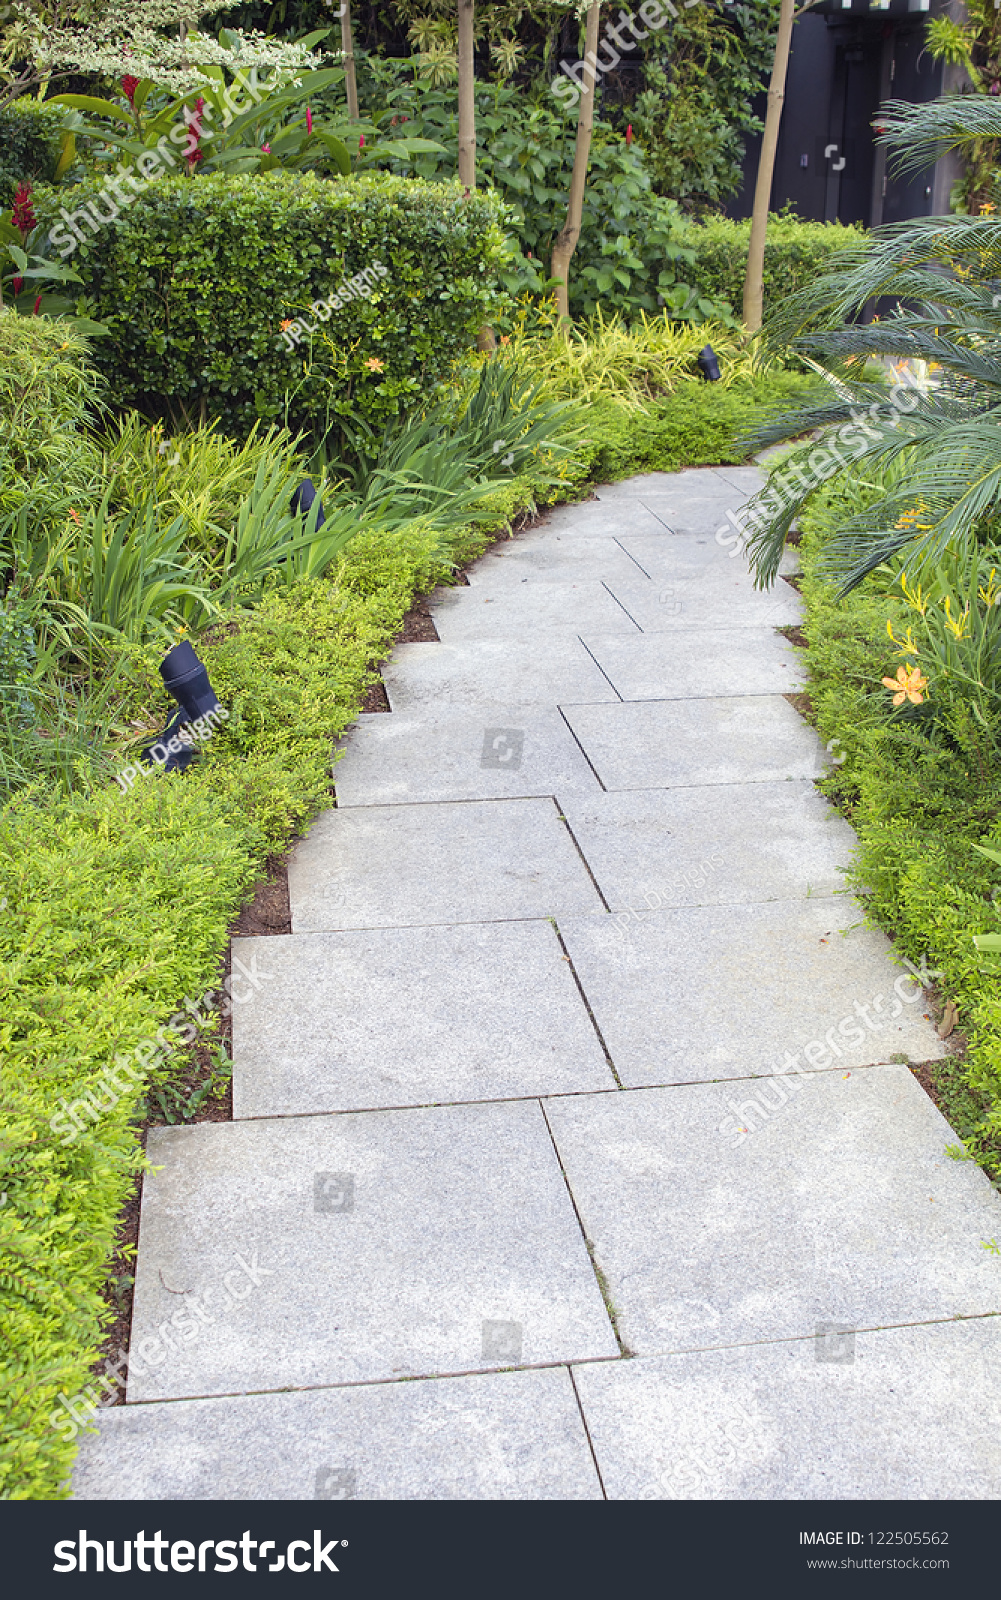 Granite Stone Square Pavers Garden Path With Trees Shrubs